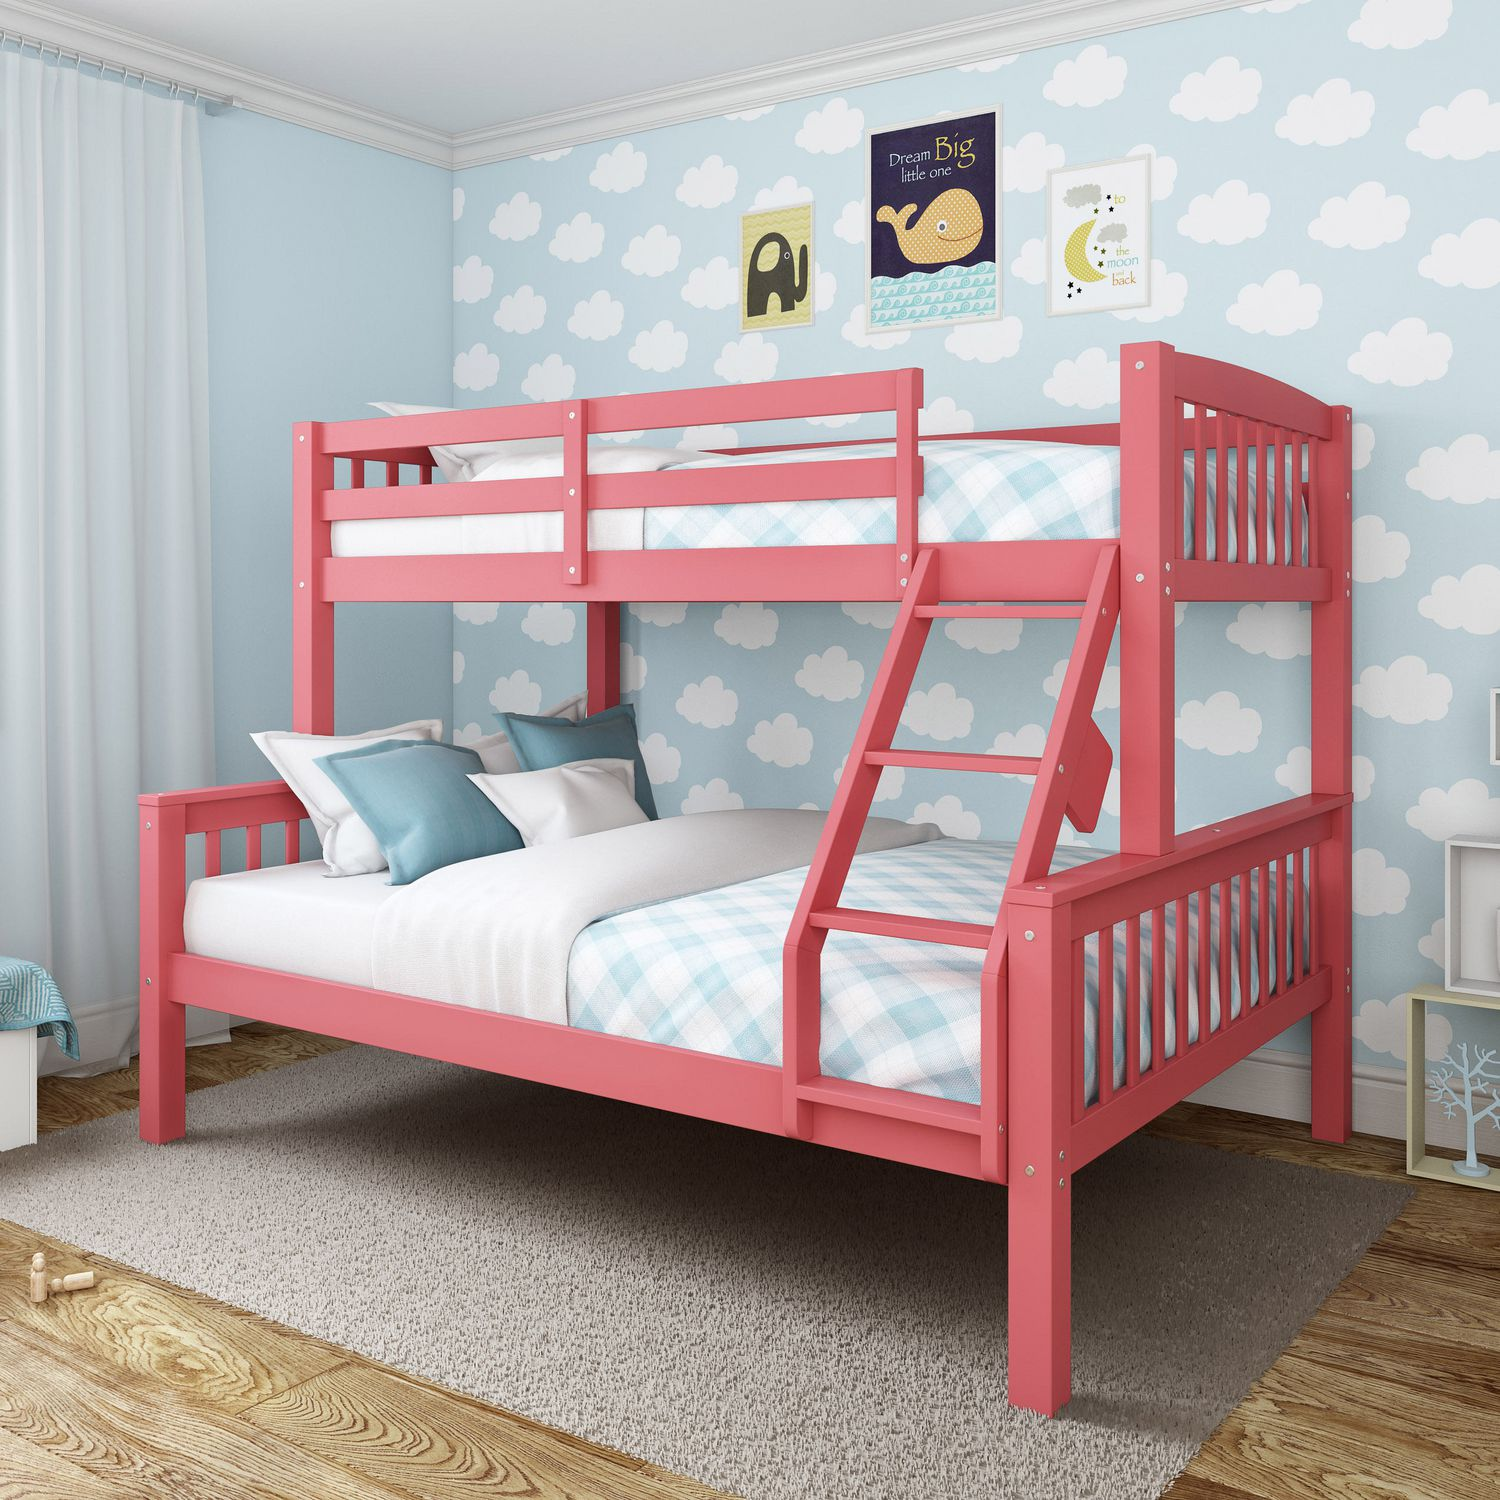 Picture of: Corliving Dakota Single Over Double Pink Painted Wood Bunk Bed Walmart Canada